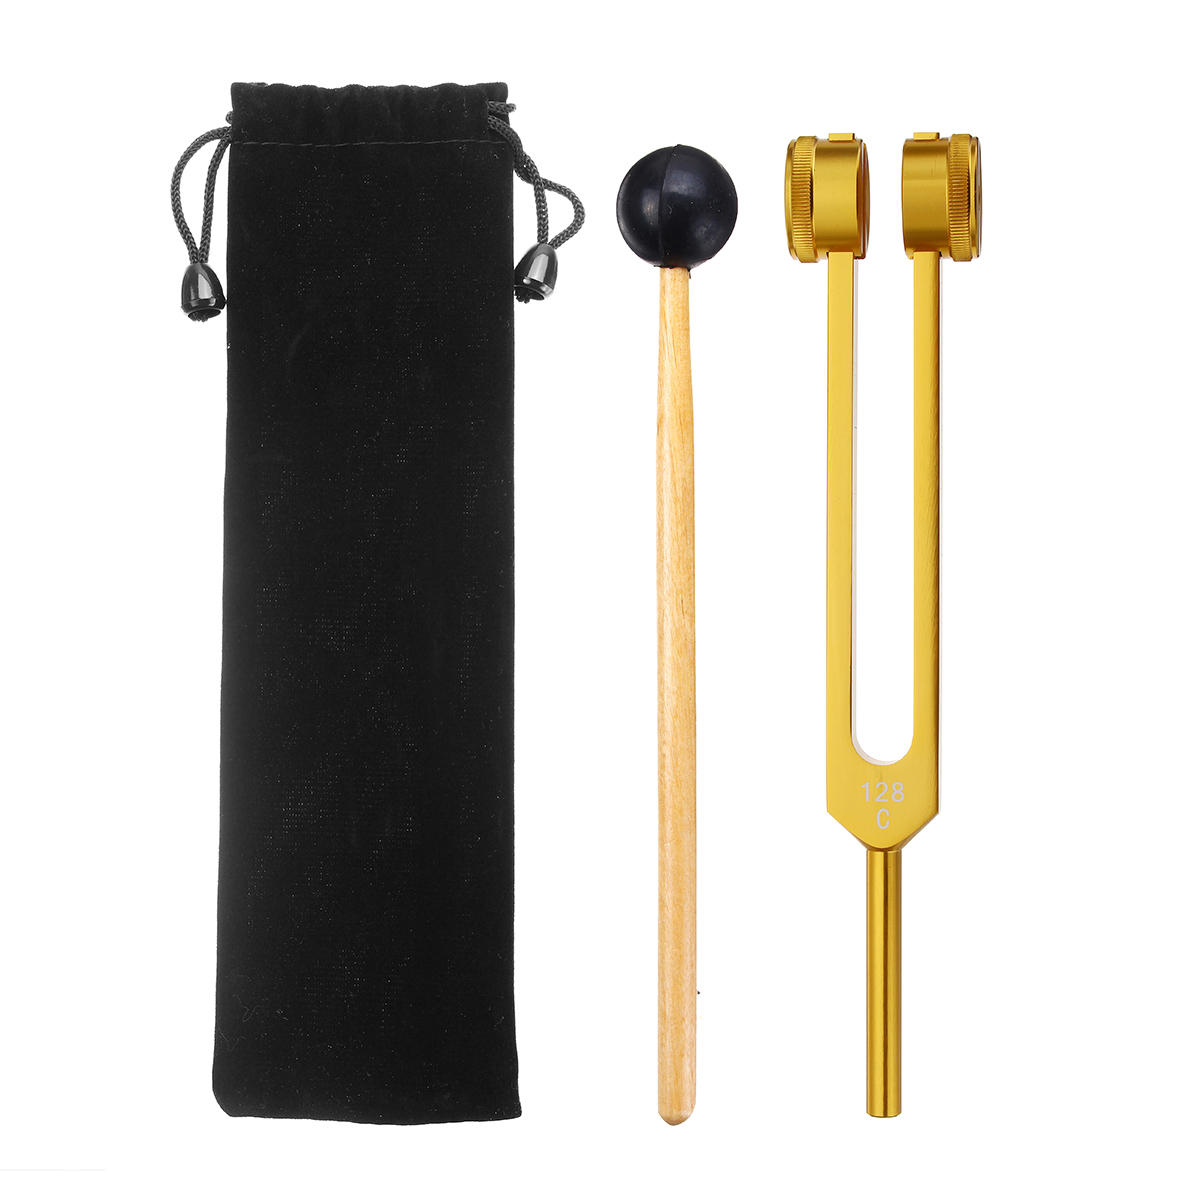 128HZ Aluminum Medical Tuning Fork With Mallet